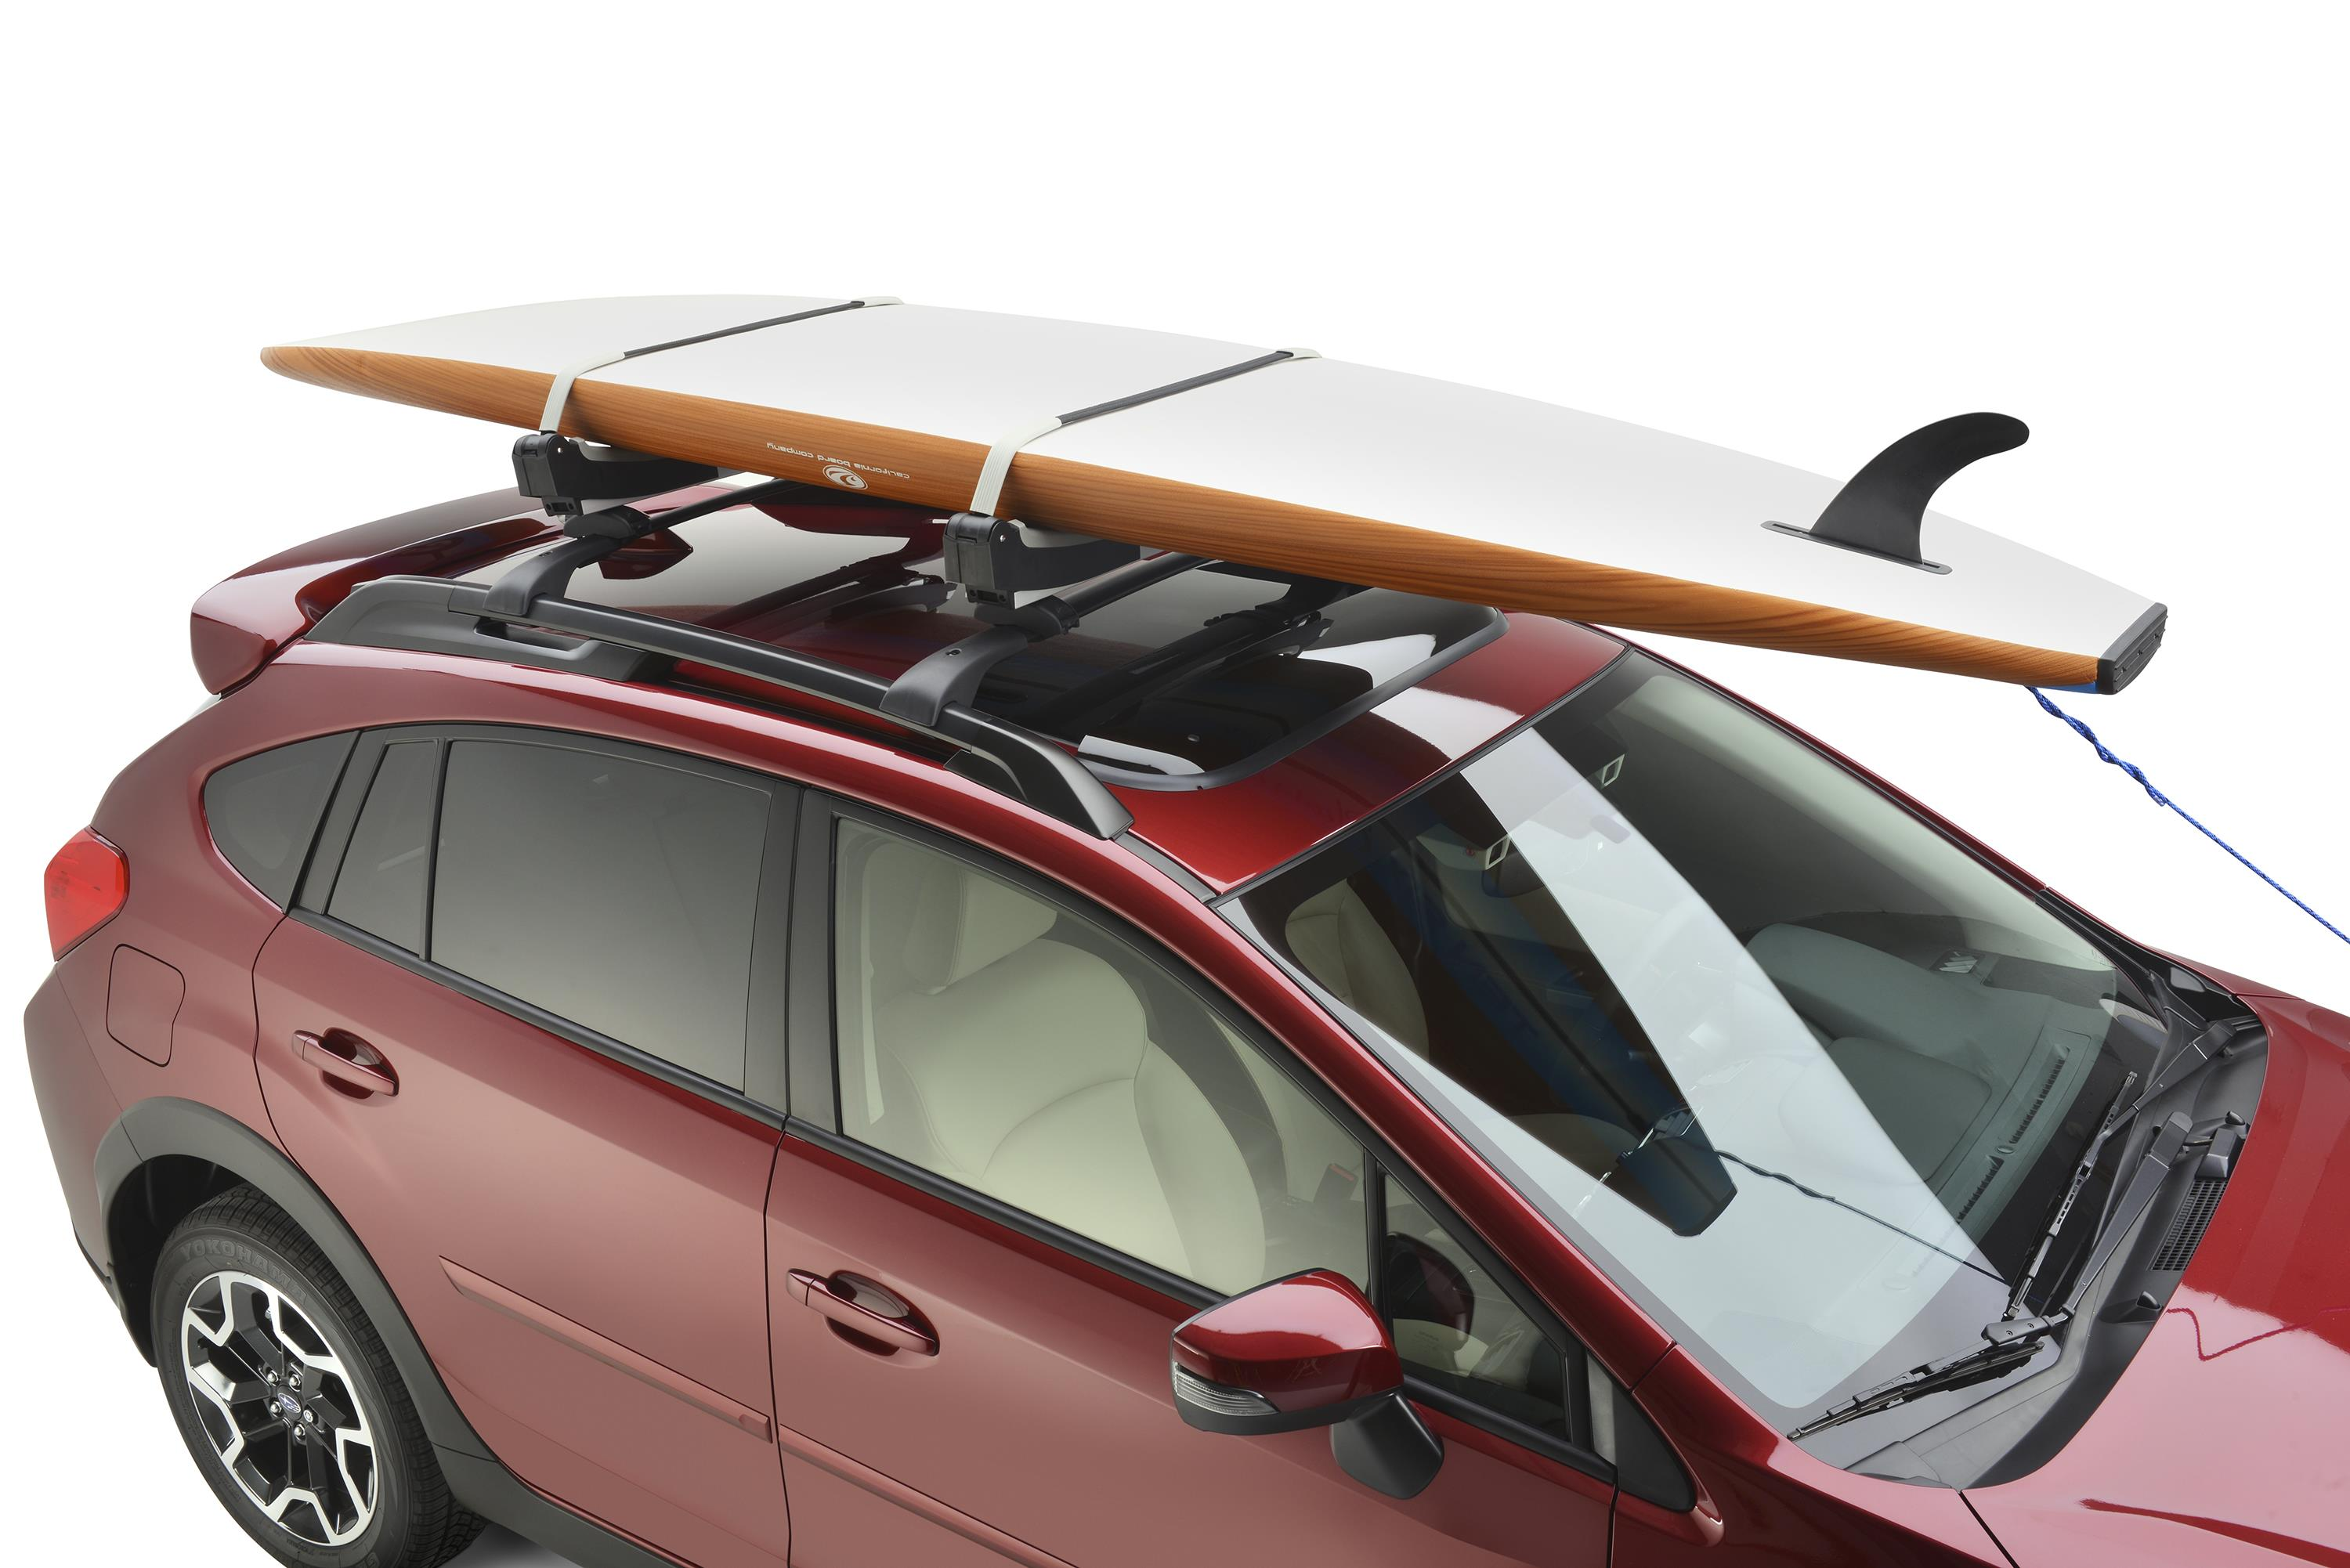 Shop Genuine Subaru Outback Accessories From The Autobarn